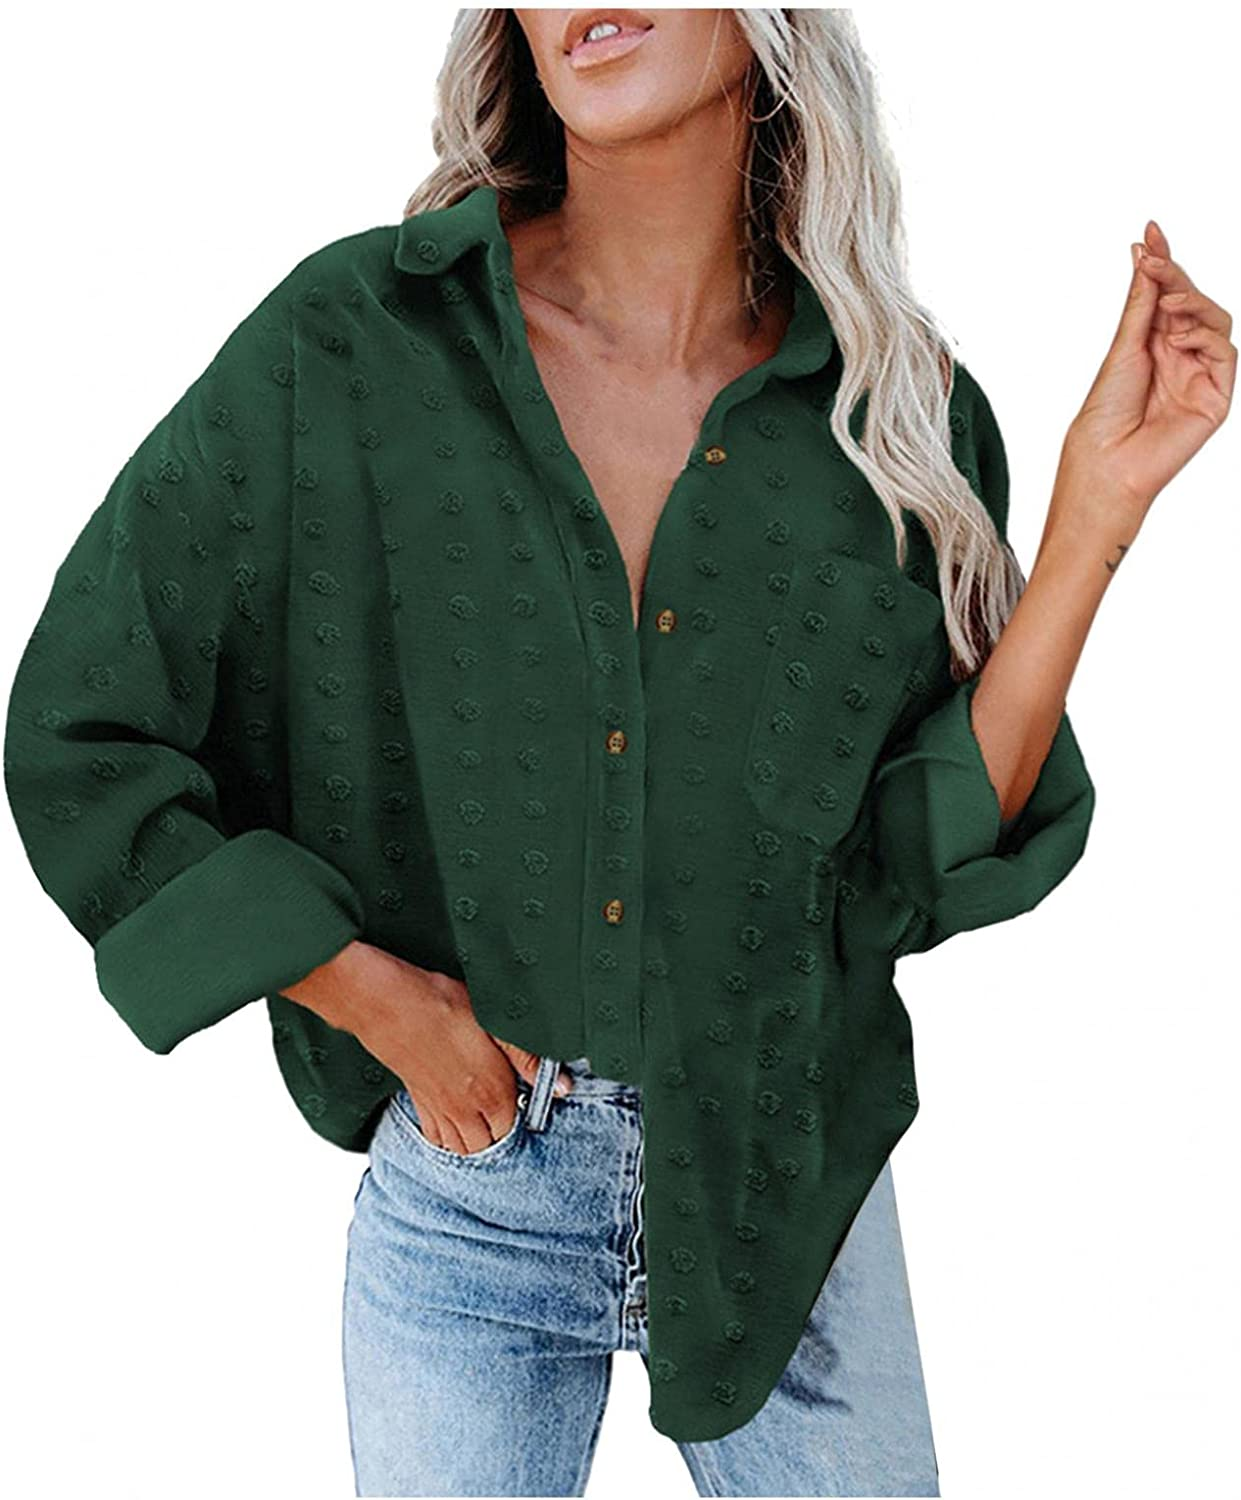 Aukbays Womens T-Shirts Women Summer Ruffle V-Neck Slim Fit Solid Color Green Tops Shirts Short Sleeve Blouses Tunic